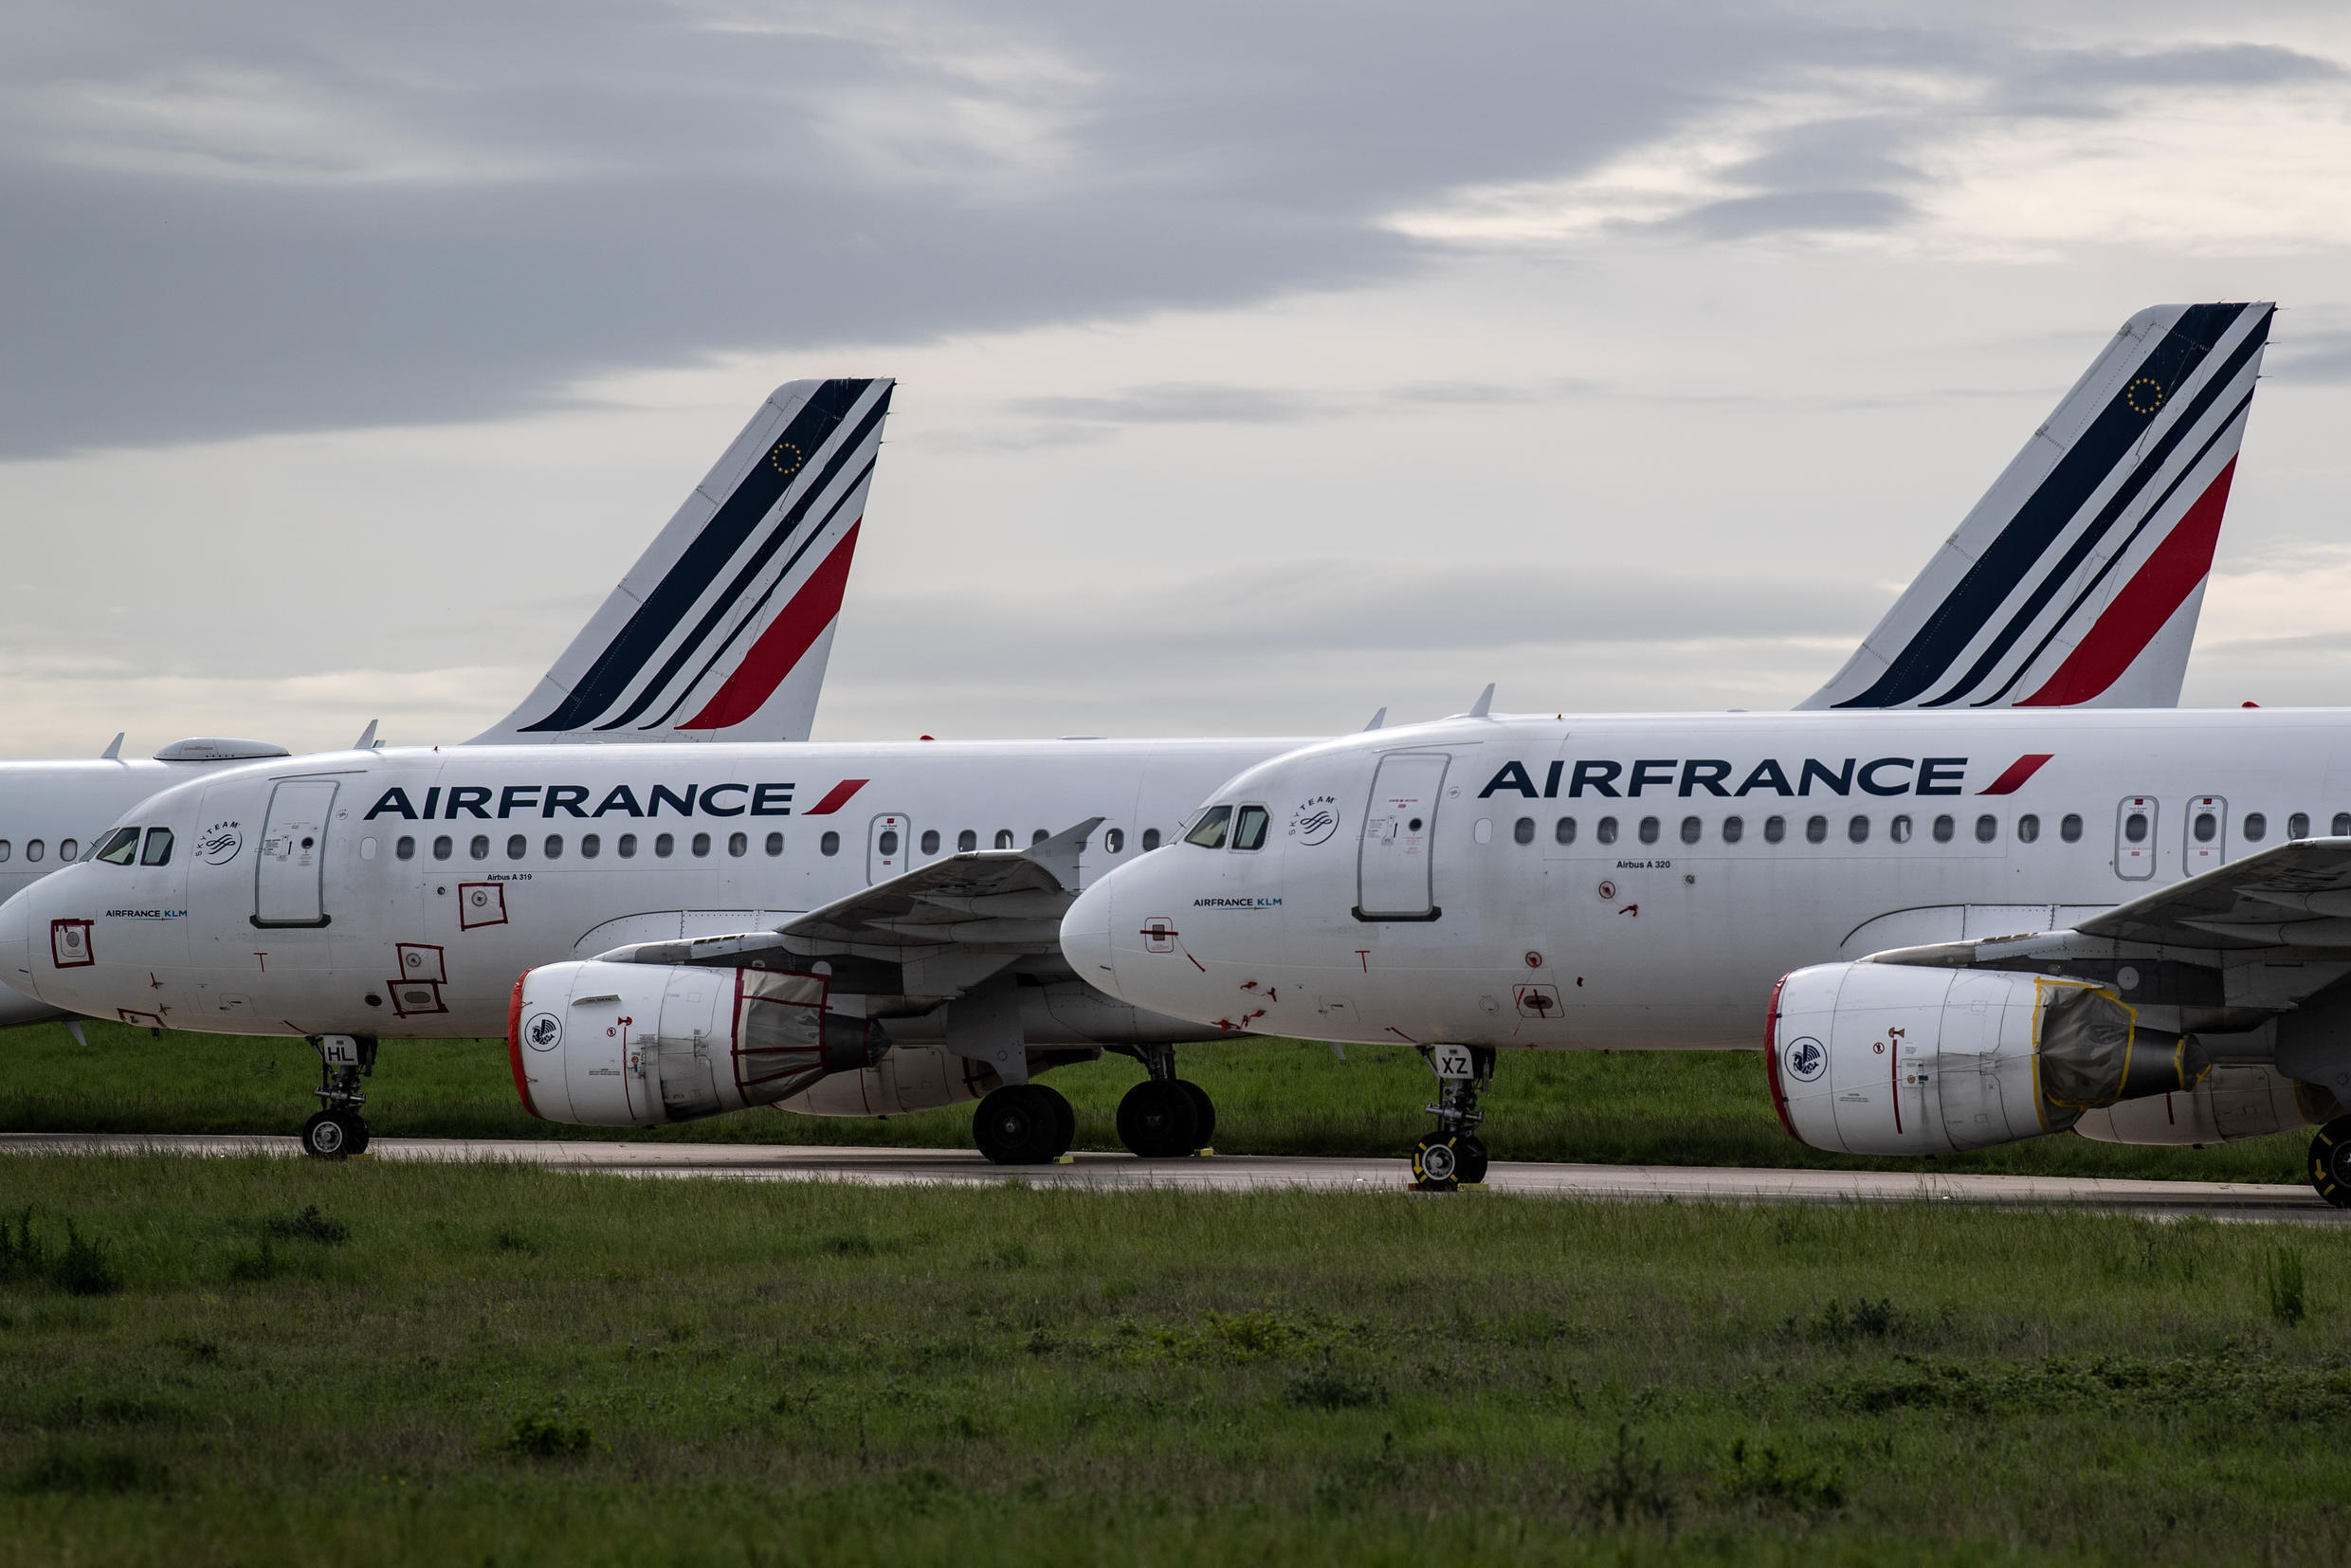 Air France planes remain parked on the runways at Paris-Charles de Gaulle airport on April 30, 2020.